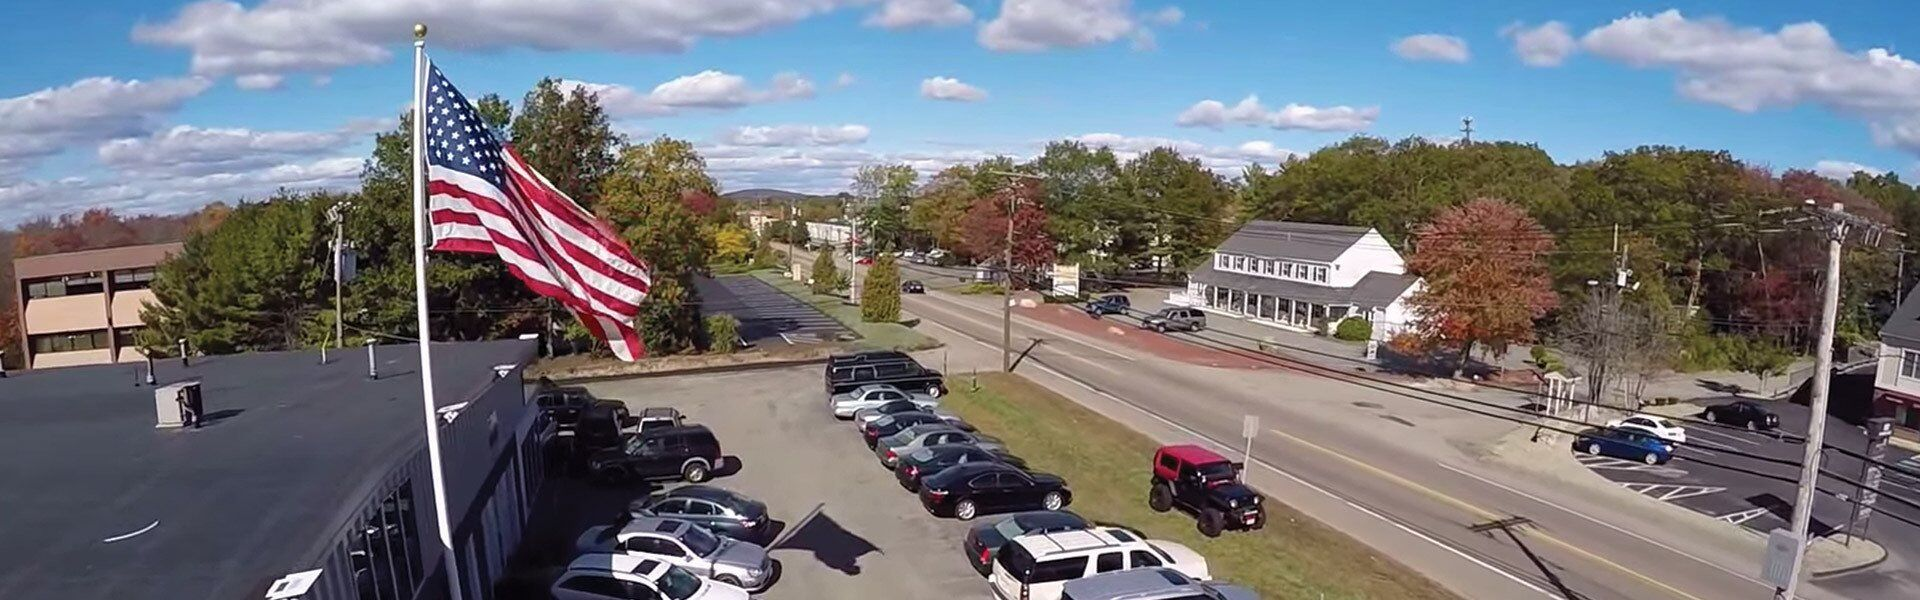 Dealership canton ma used cars done deal motors autocars for Done deal motors canton ma